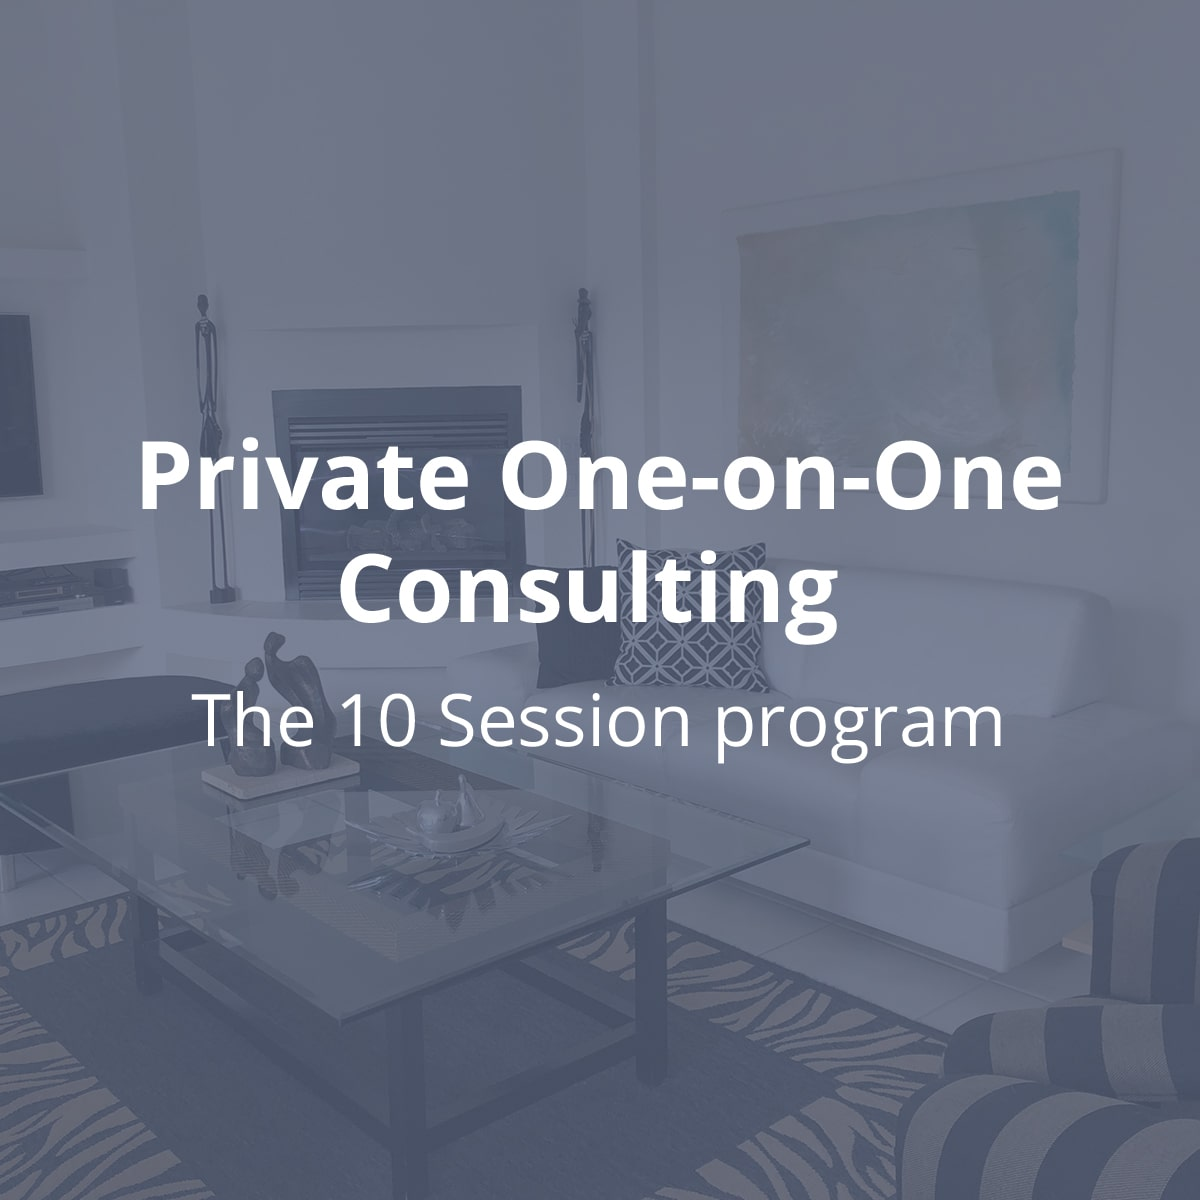 Private One-on-One Consulting